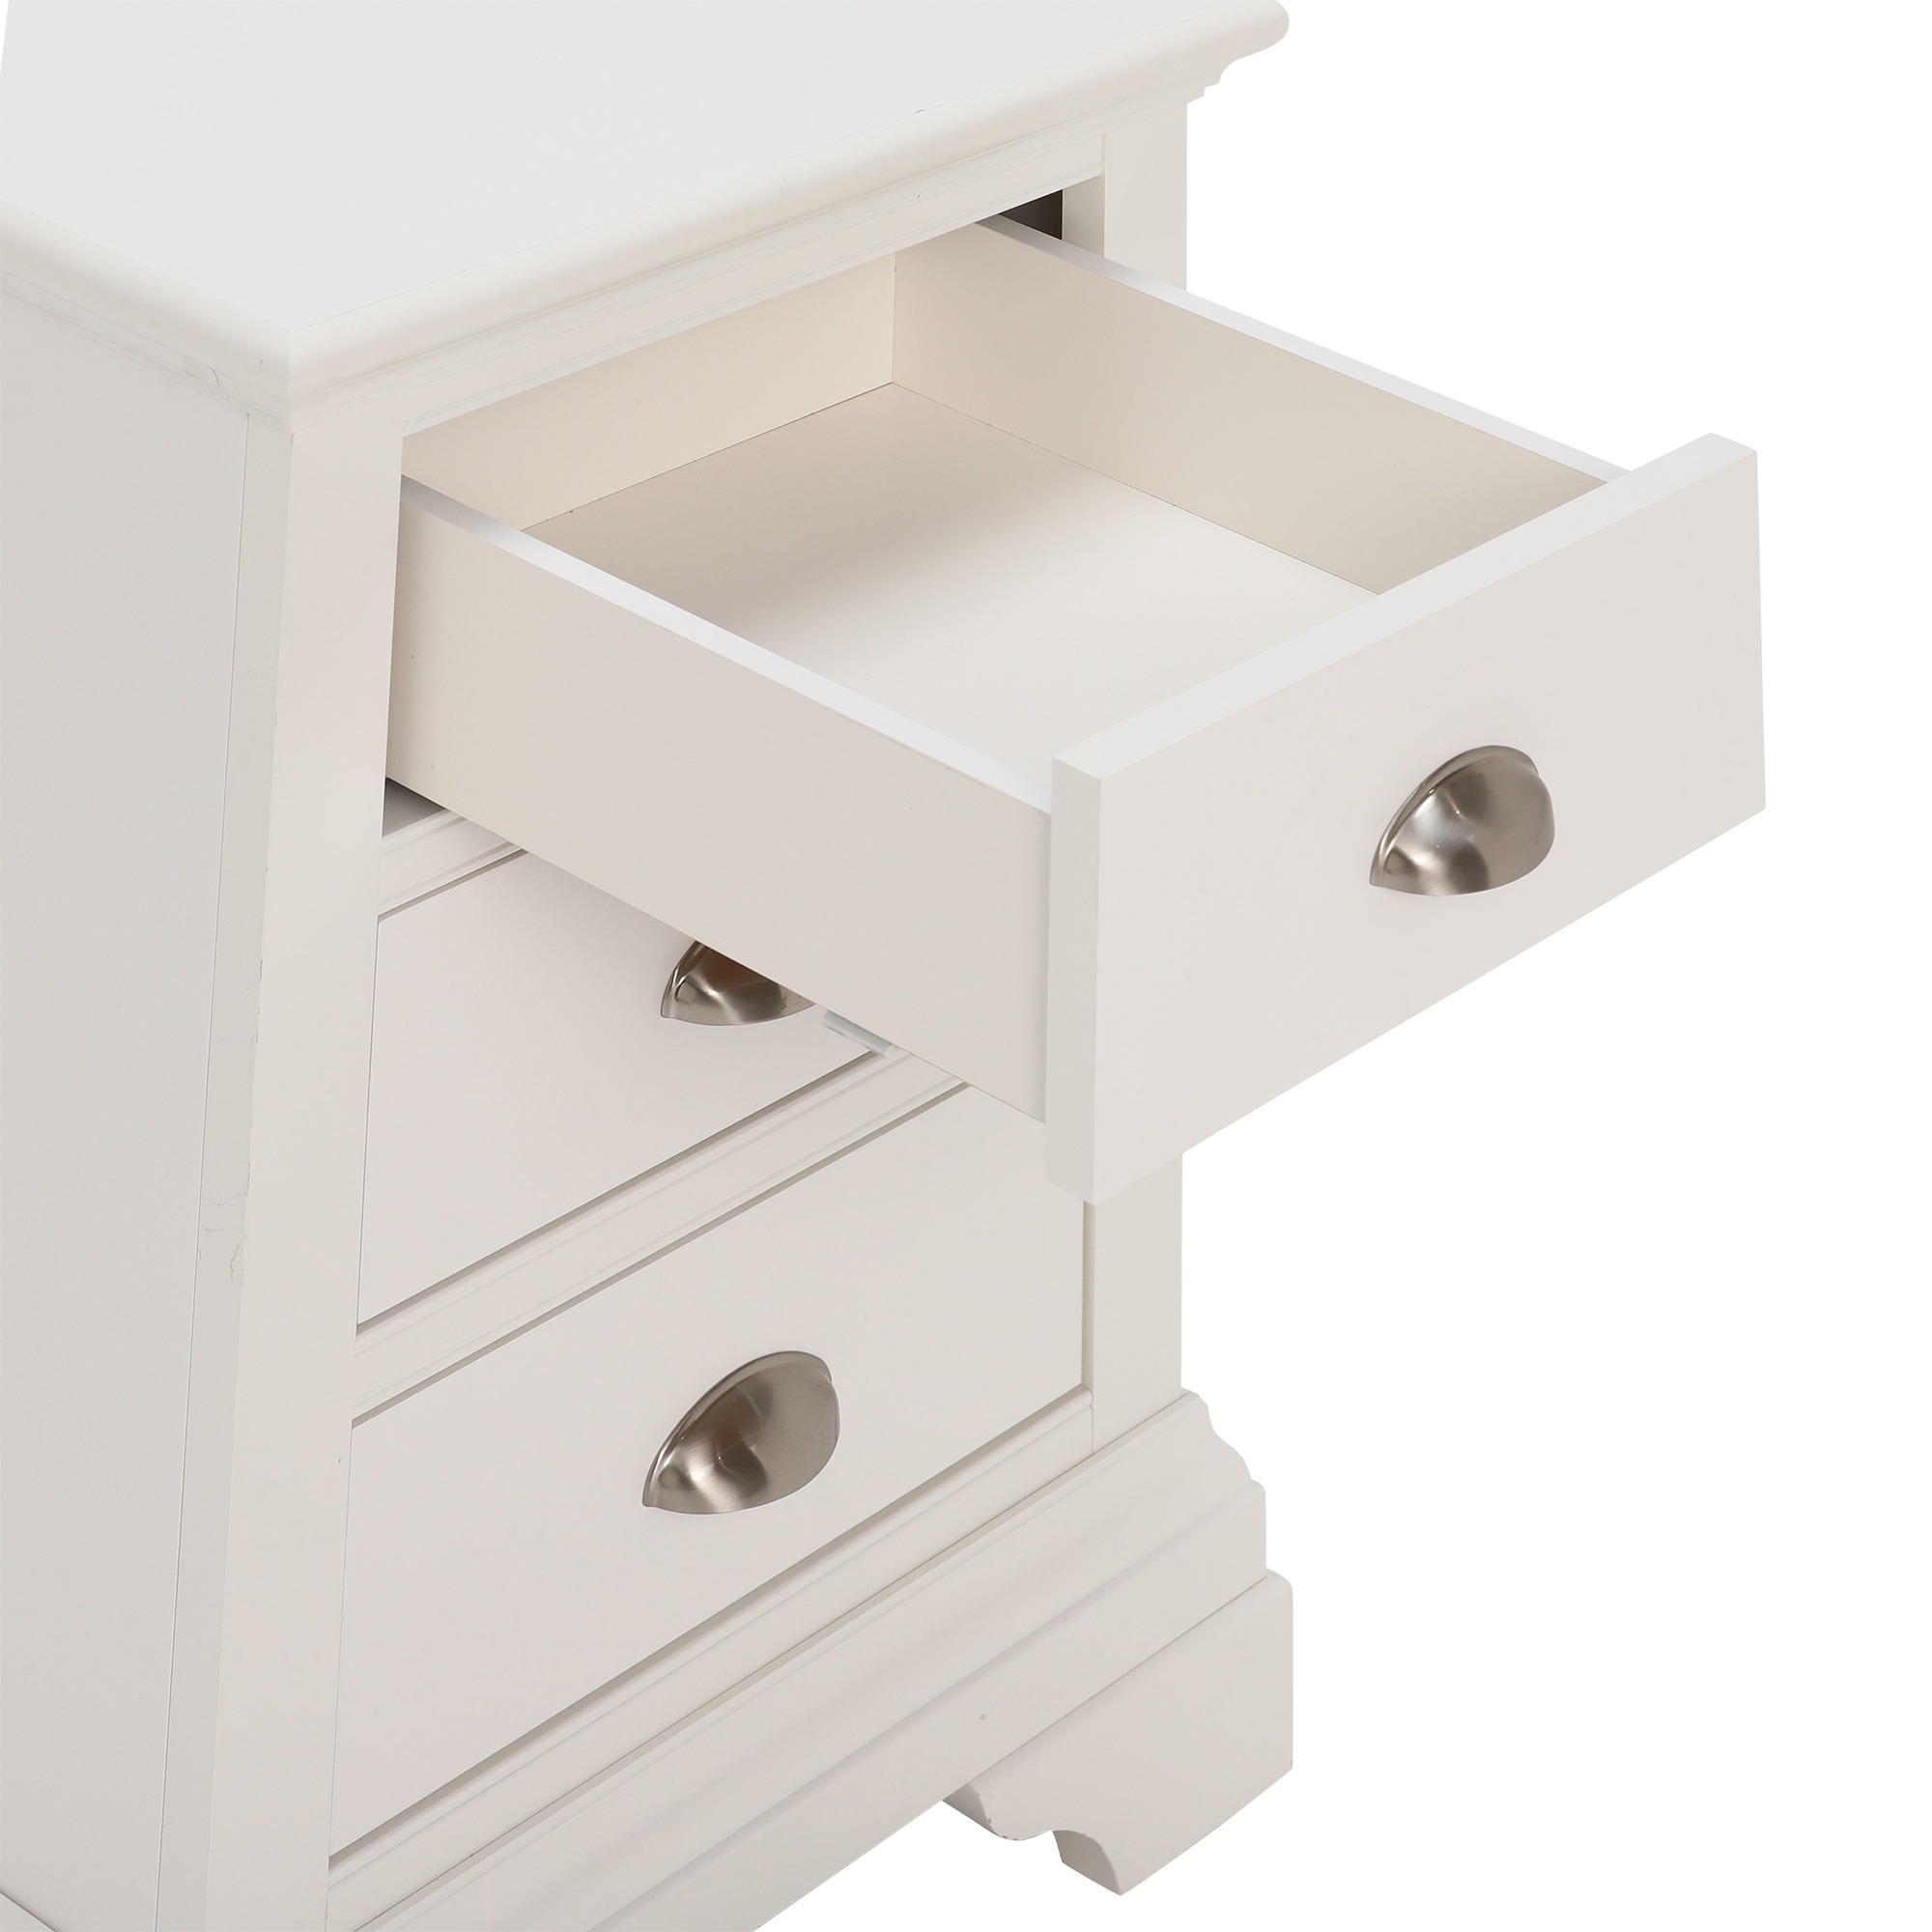 SOFT CLOSING DRAWERS DETAIL